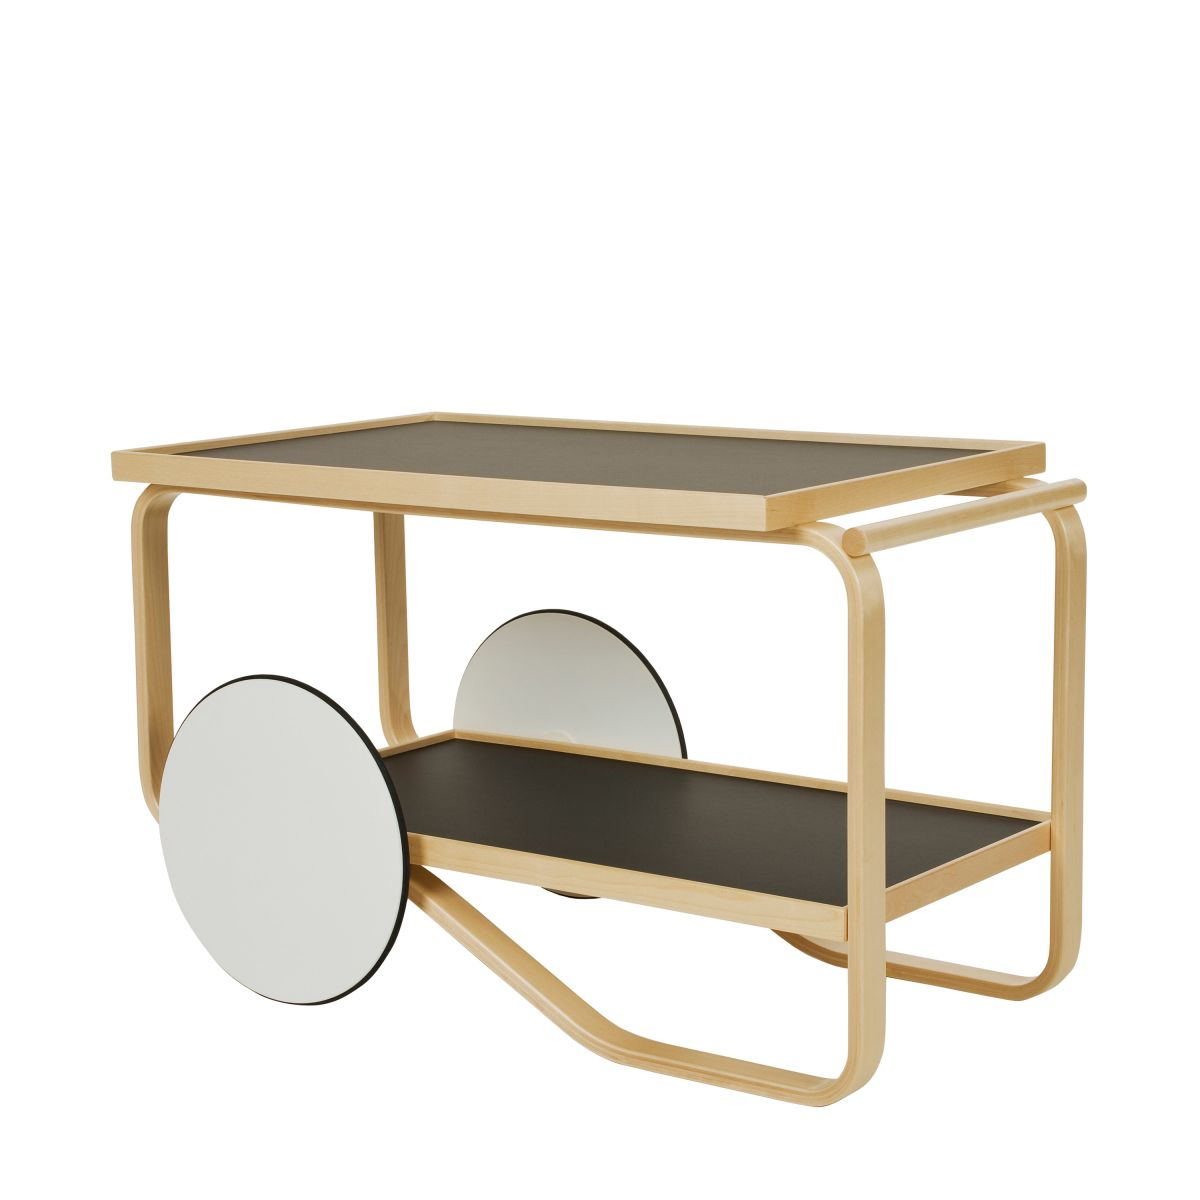 A Frame Trolley Artek Tea Trolley 901